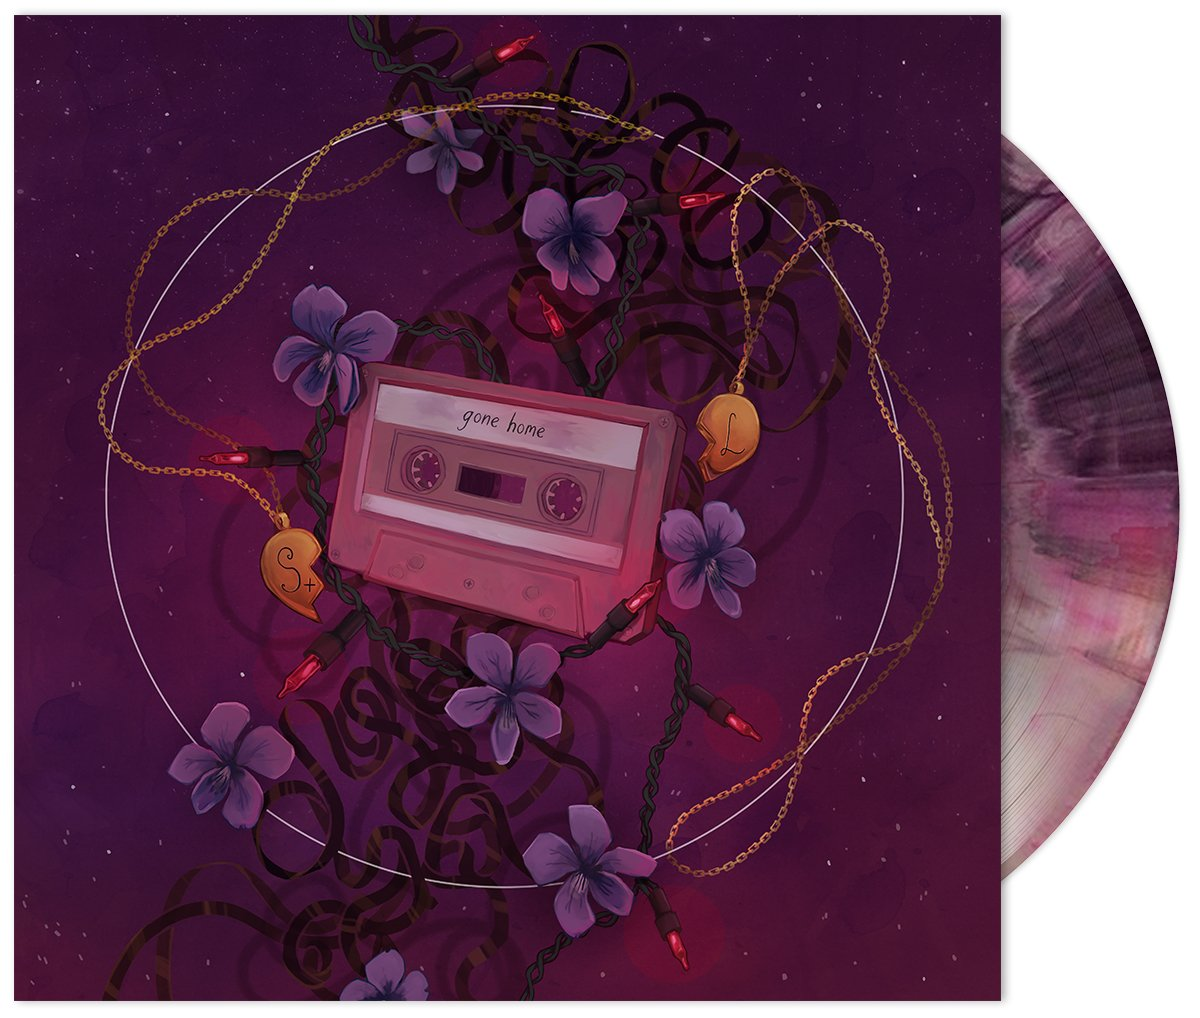 Gone Home Vinyl Soundtrack (5th Anniversary Edition) - iam8bit (Asie et Océanie)